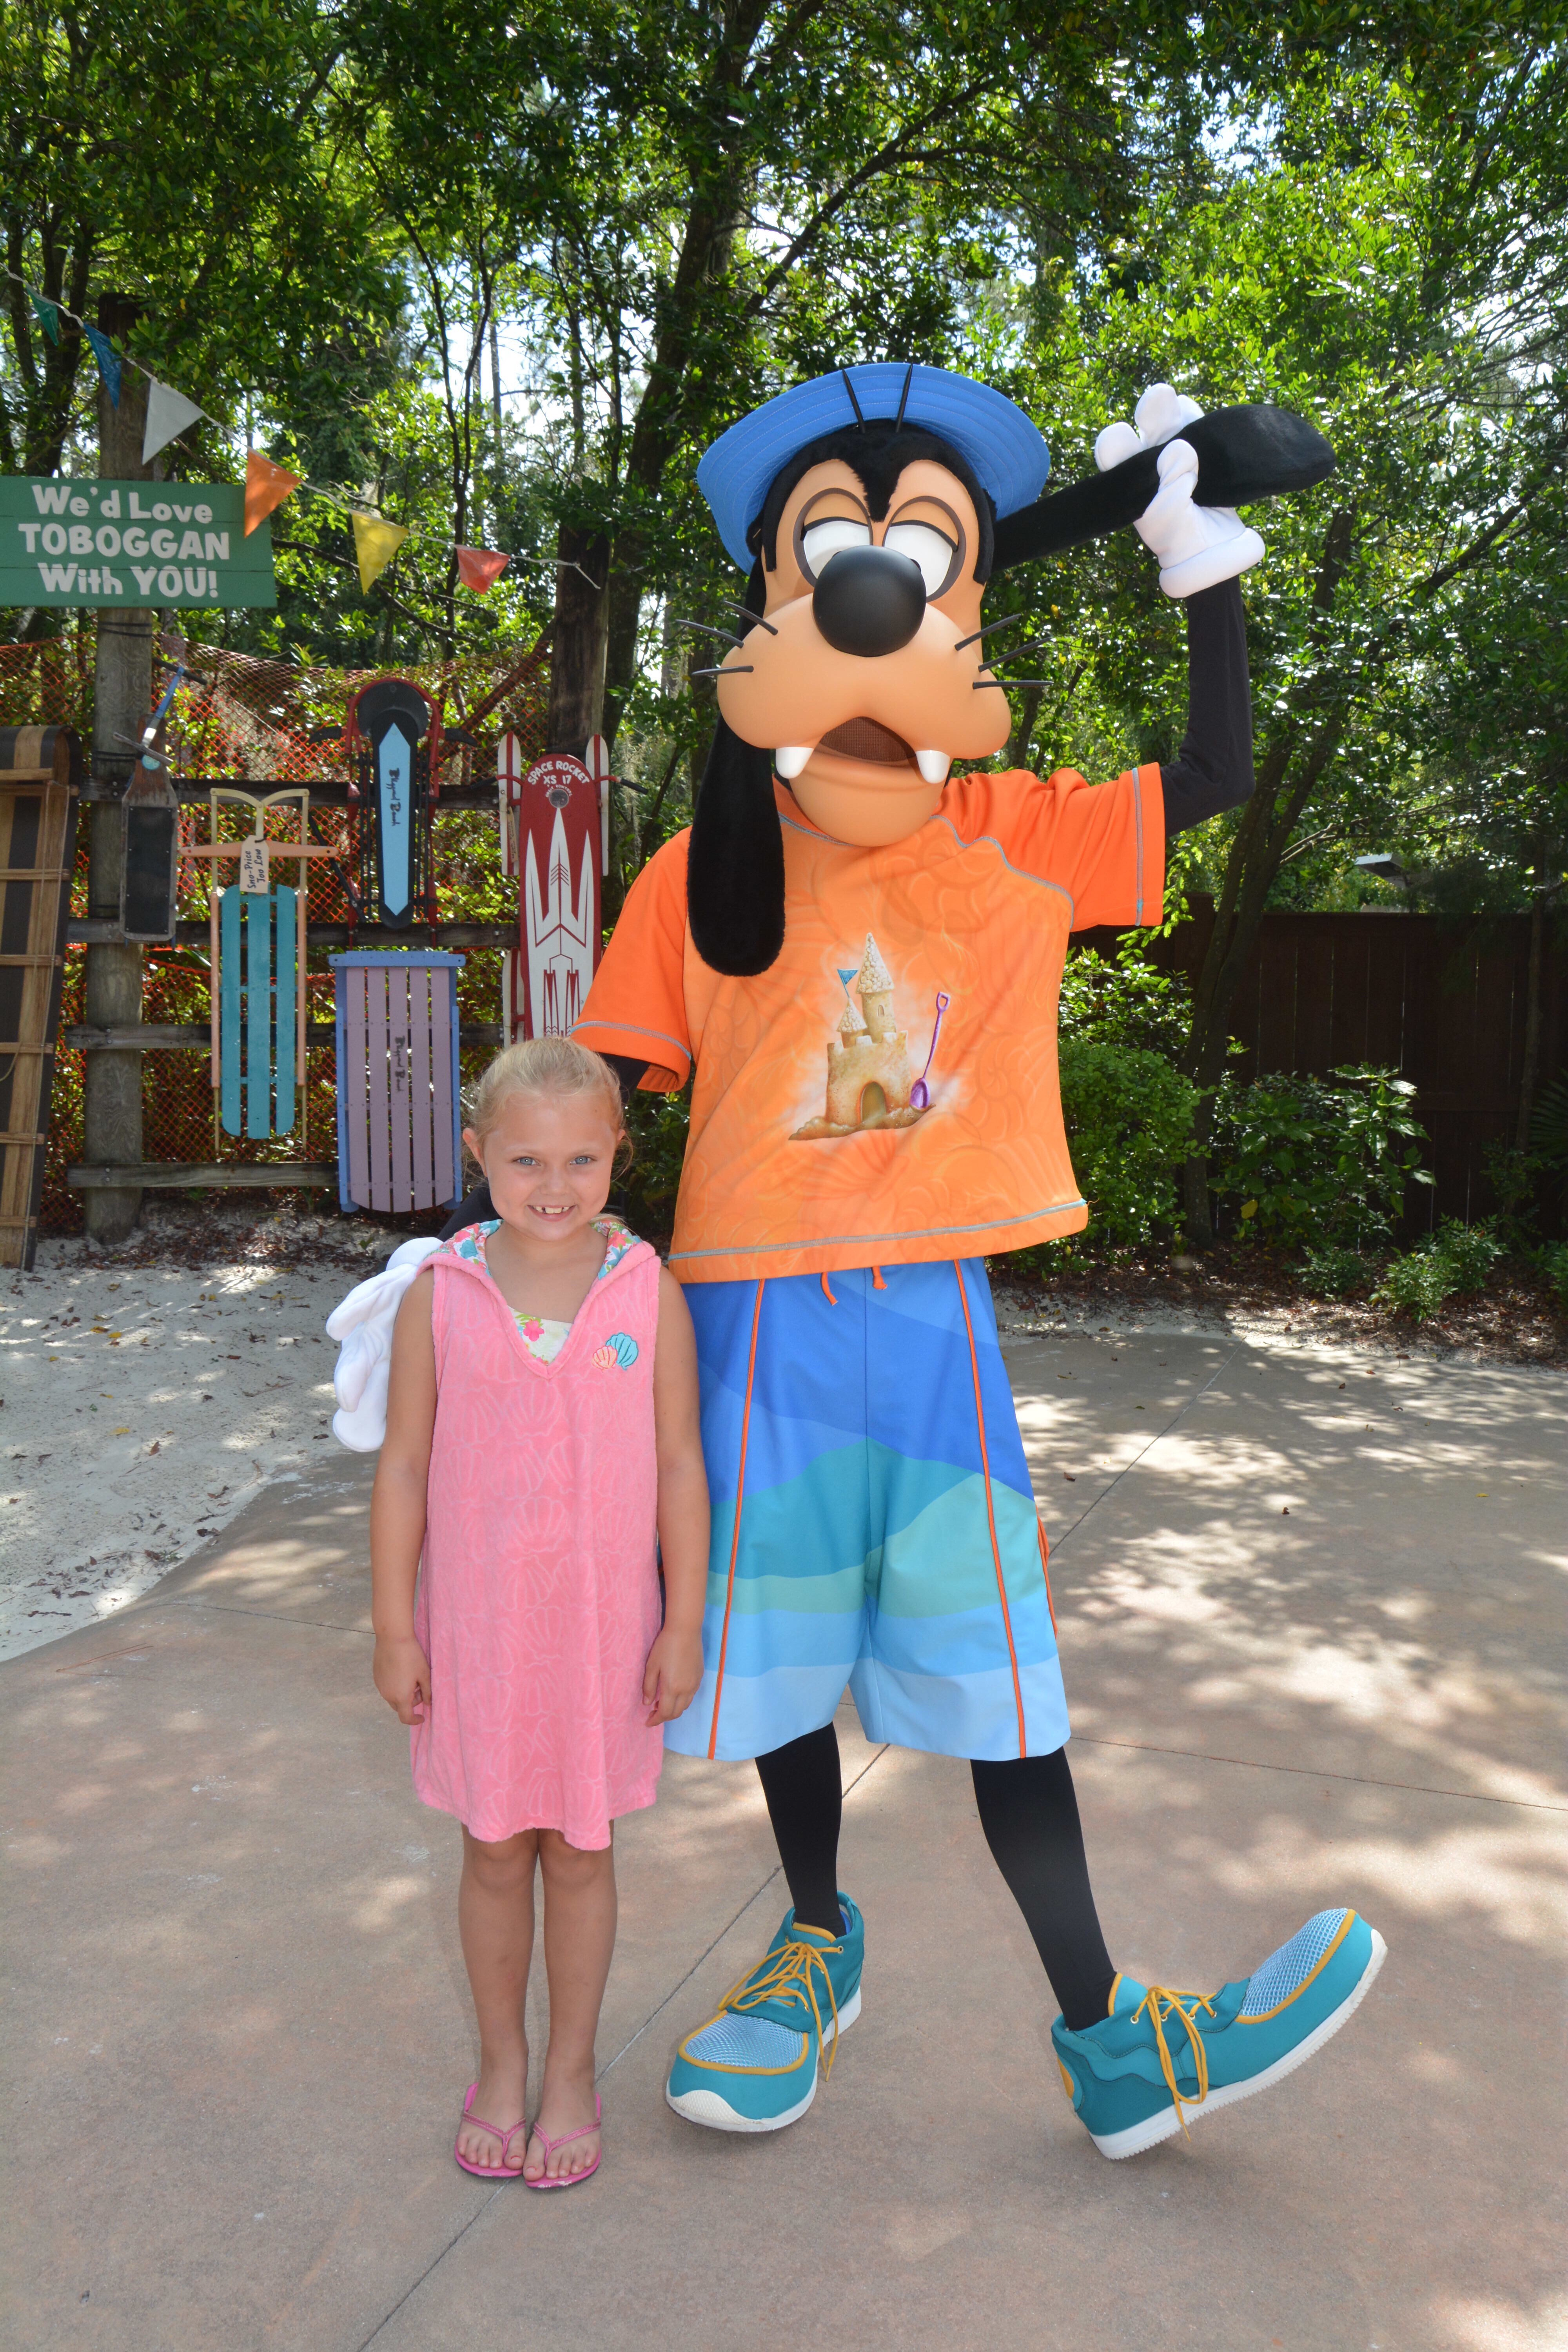 Delaney and Goofy hanging out